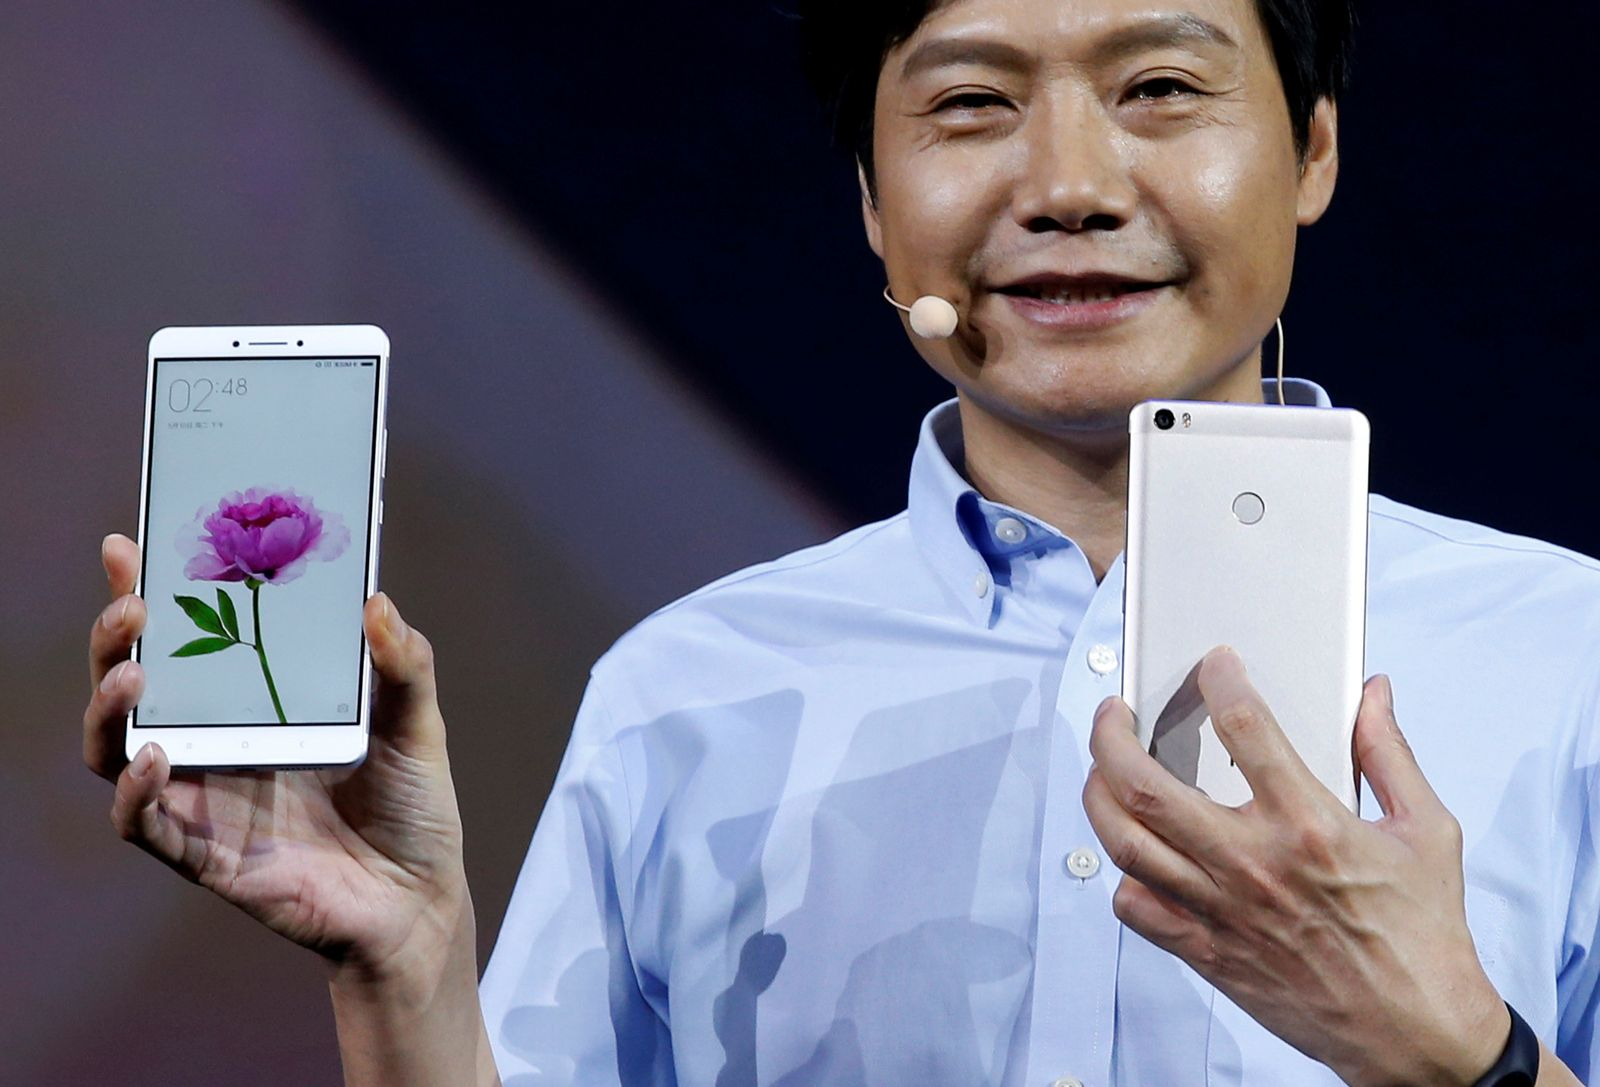 Global Challengers / A / CHINA-XIAOMI/